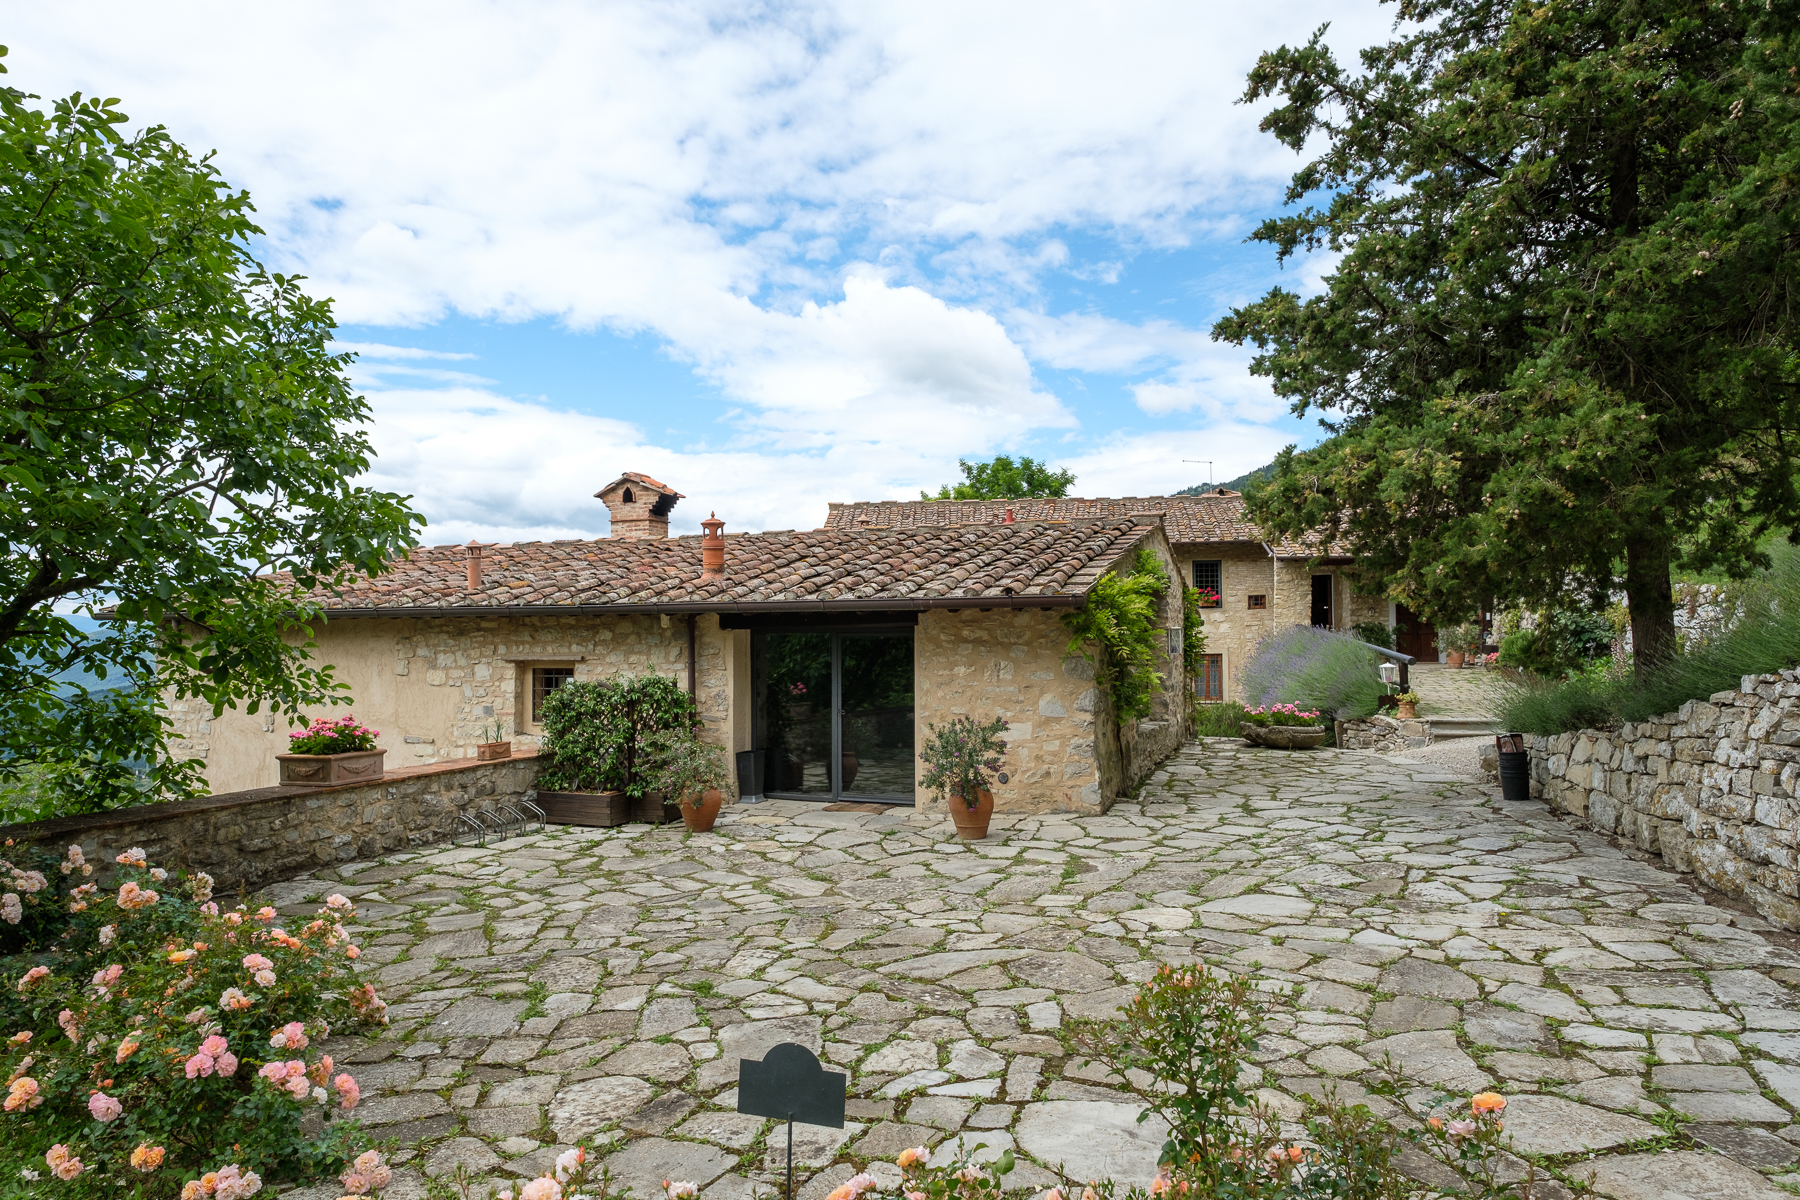 Additional photo for property listing at Antique convent on the hills of Florence Via di Vara e Lonciano Sesto Fiorentino, Florence 50019 Italie